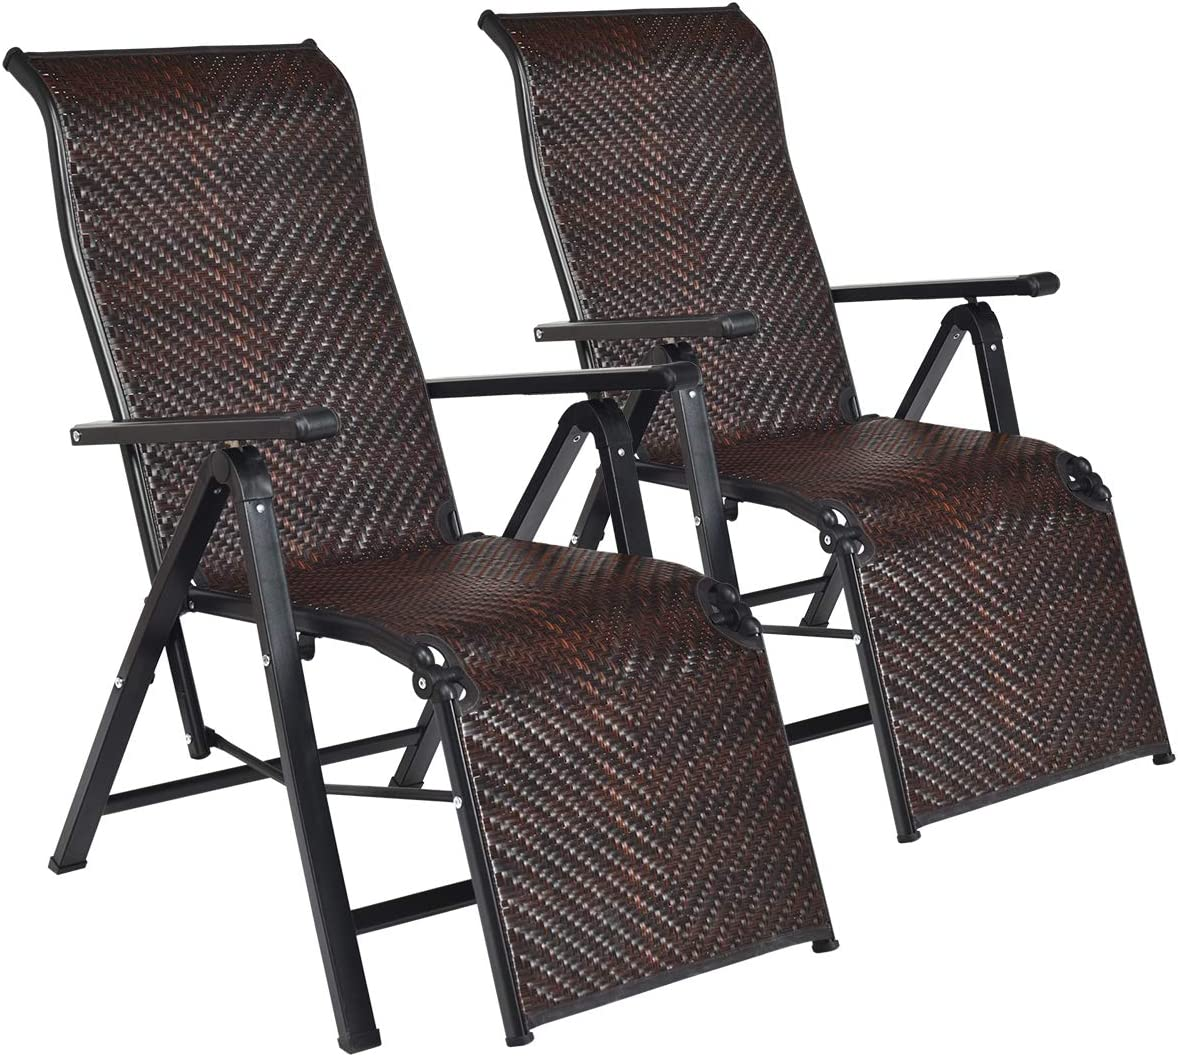 Tangkula 2 Pcs Folding Reclining Rattan Chair, Portable Chaise Lounge Chair w Adjustable Positions, Outdoor Lounge Chair with Wide Armrest, Sturdy Steel Frame for Garden, Patio, Beach 2